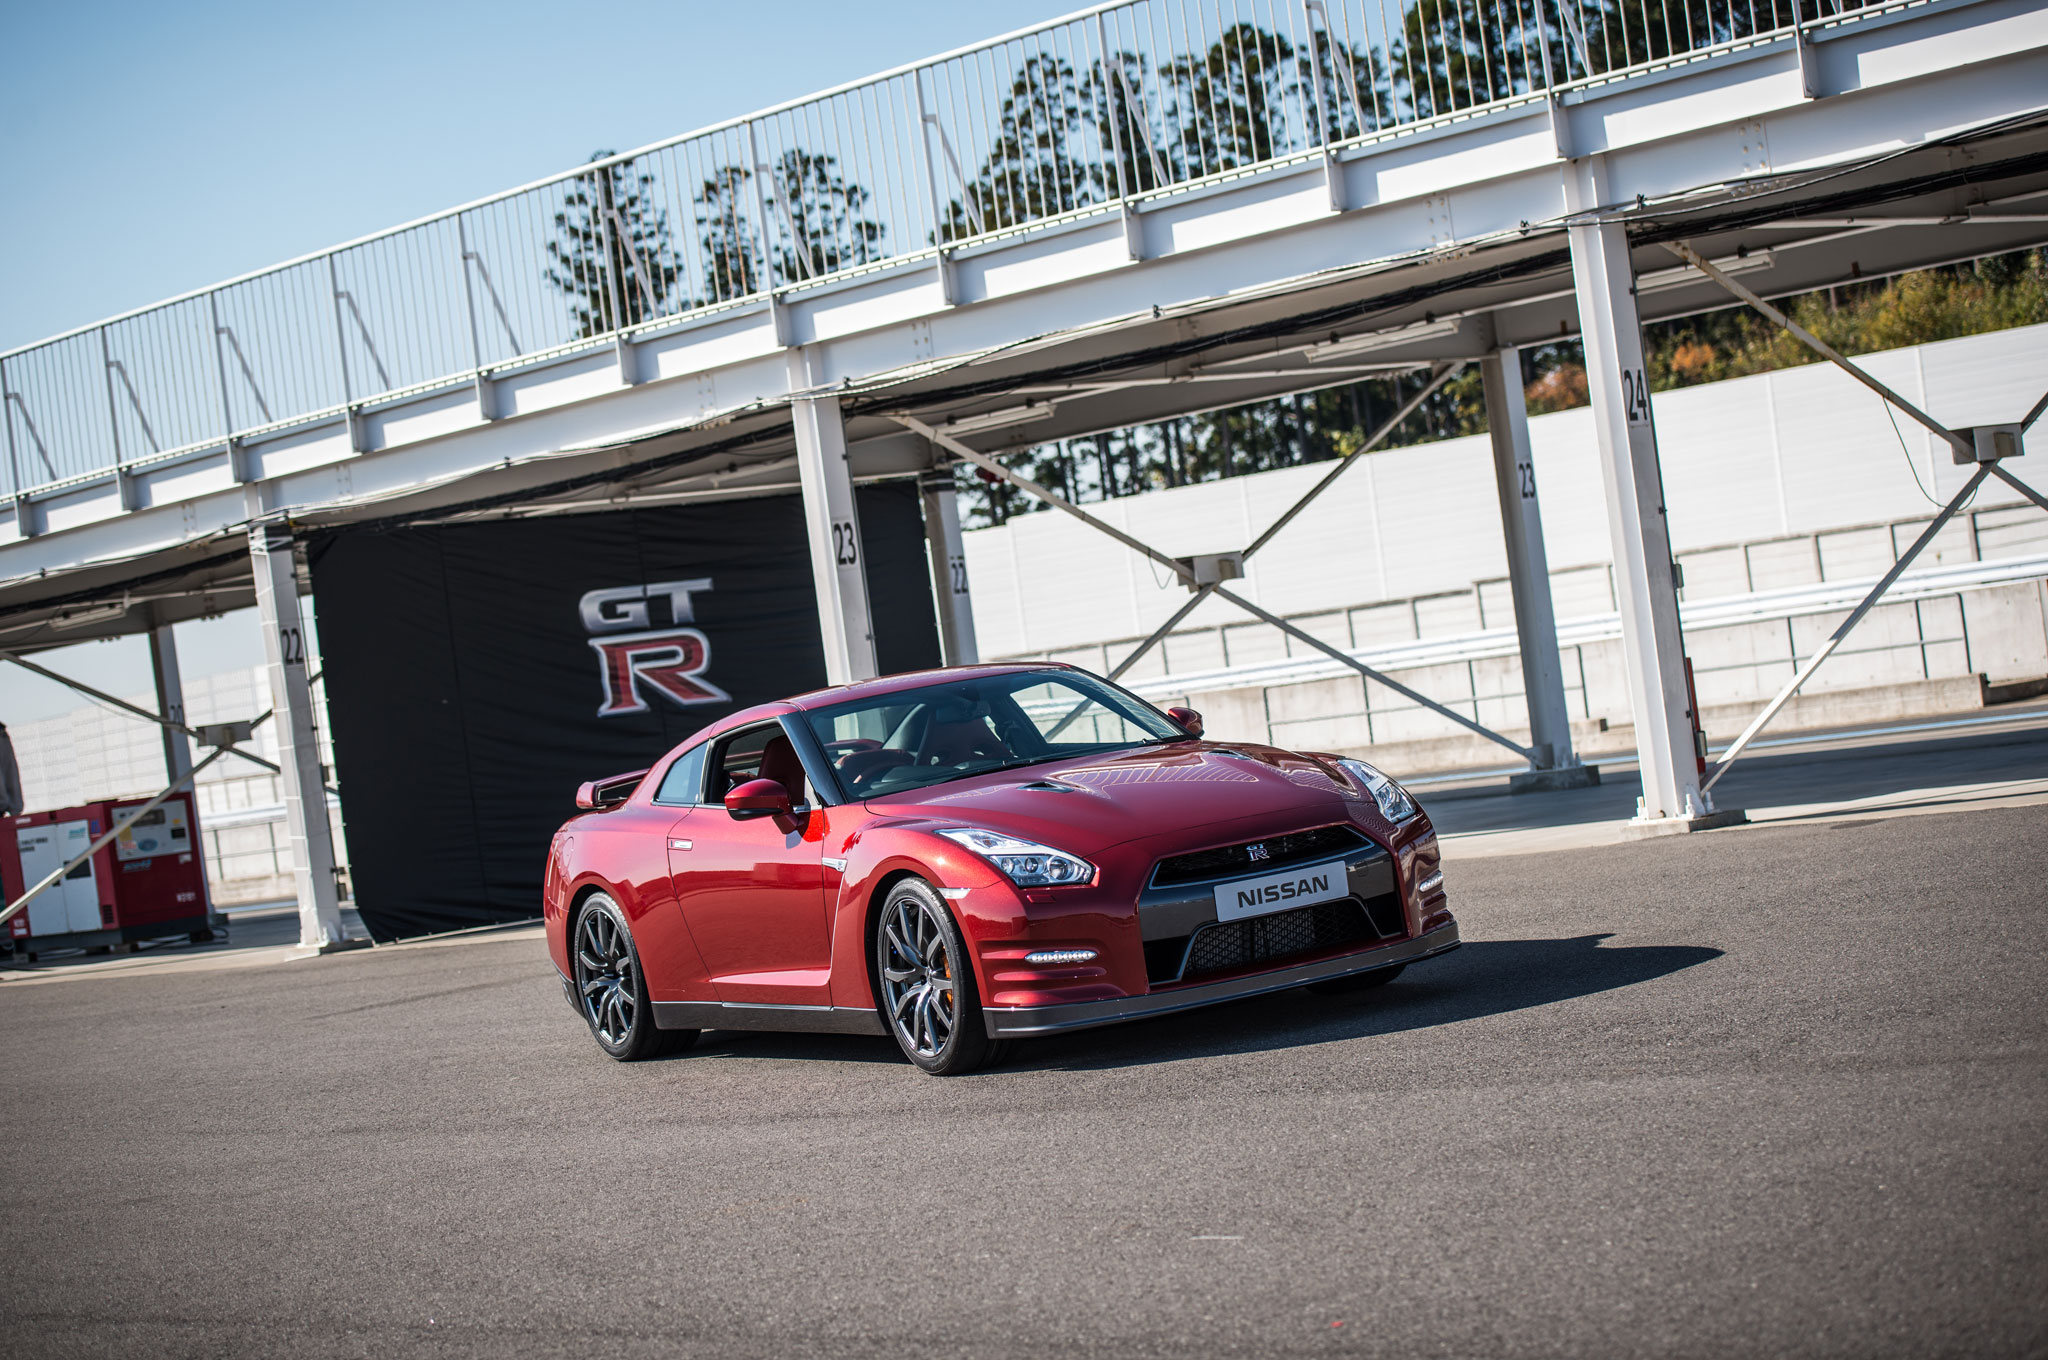 2015 Nissan GT R Front Right View1